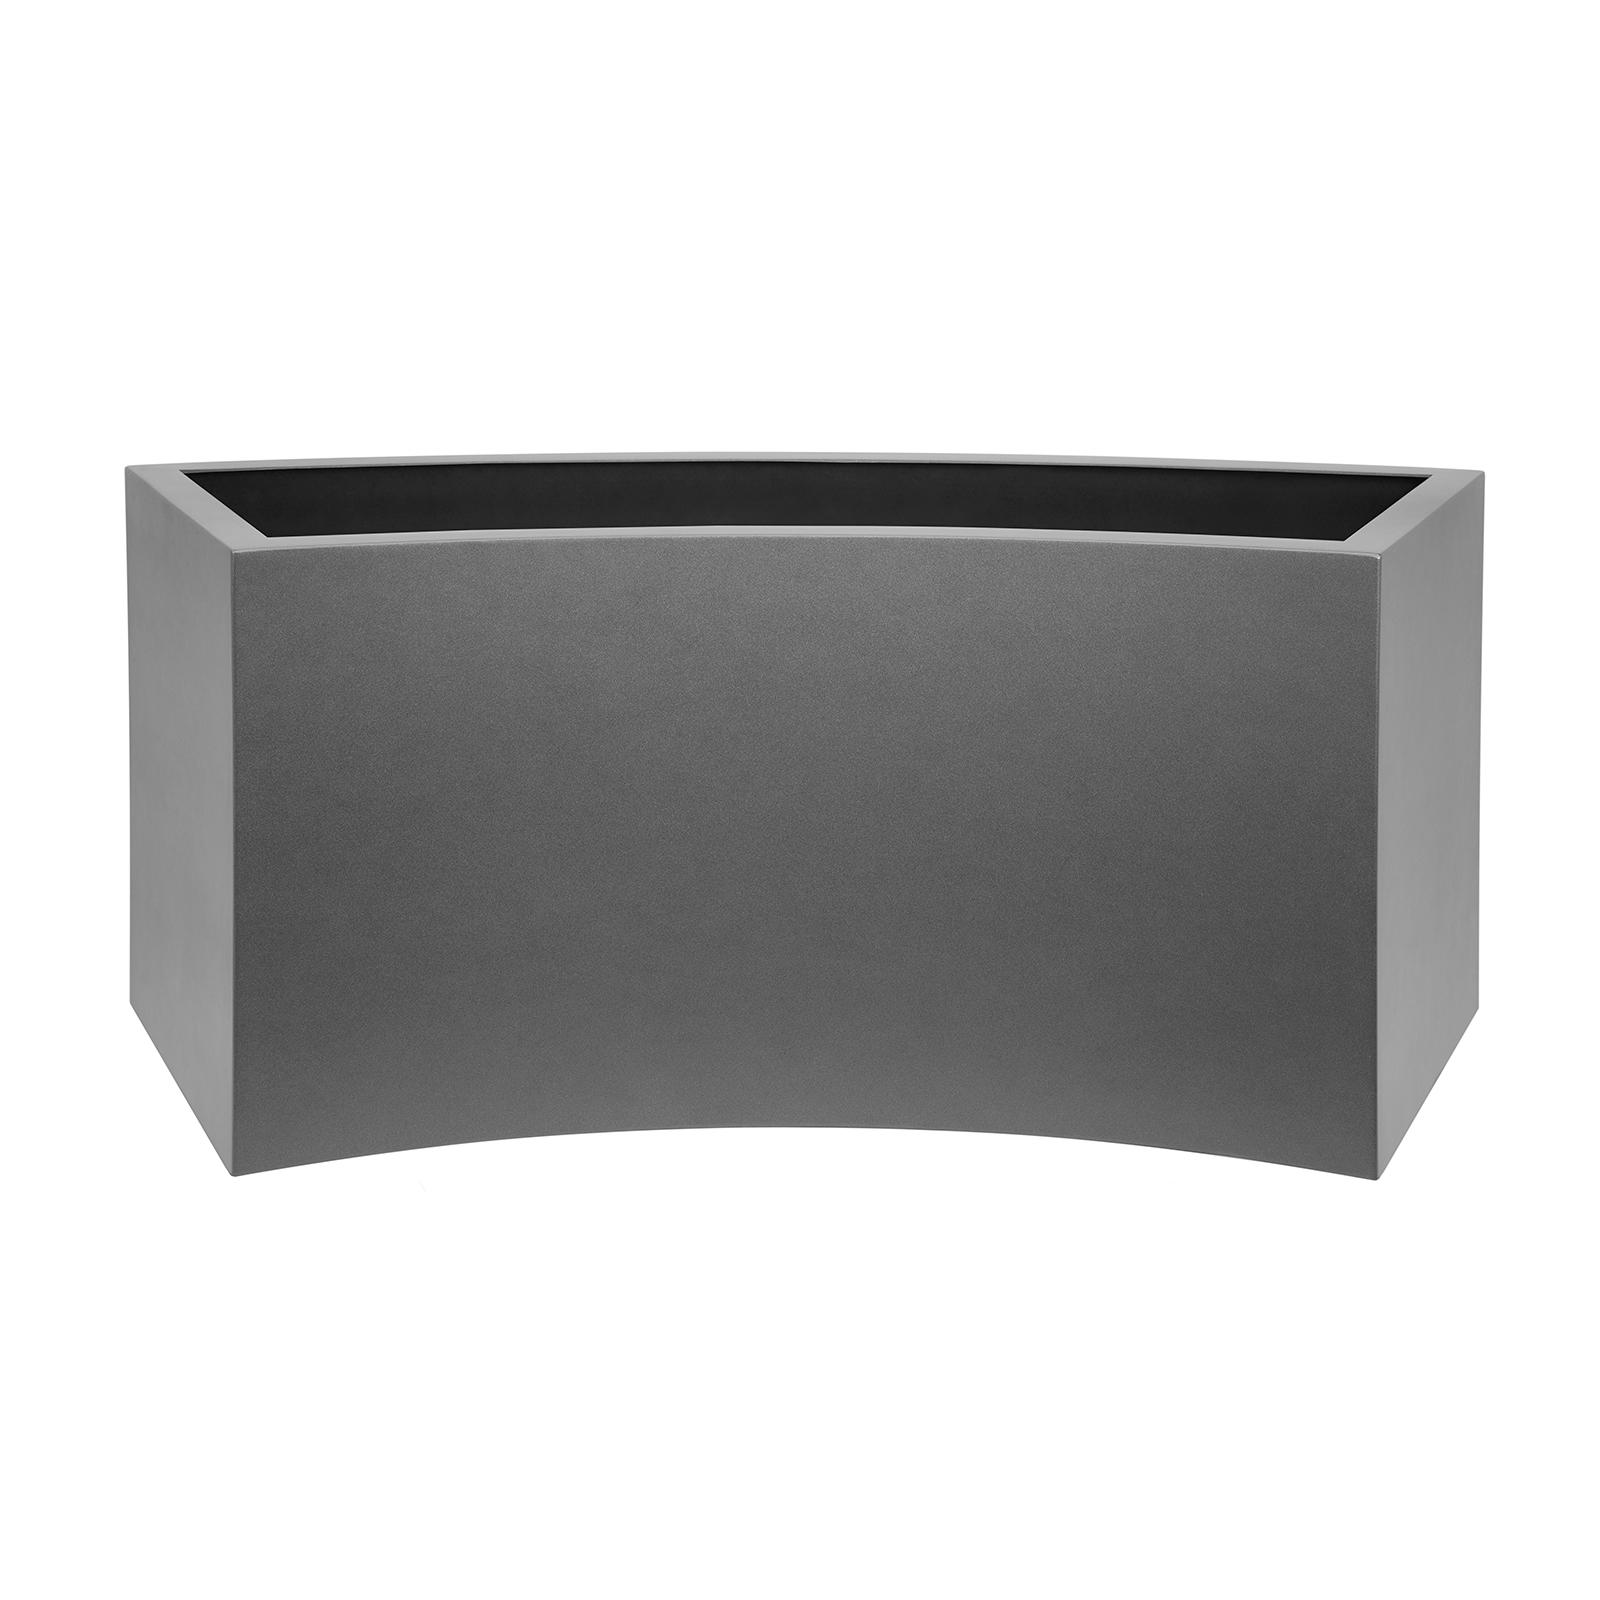 curved_trough_planter_fibreglass_modern_garden_outdoor_luxury_high_quality_kent_uk